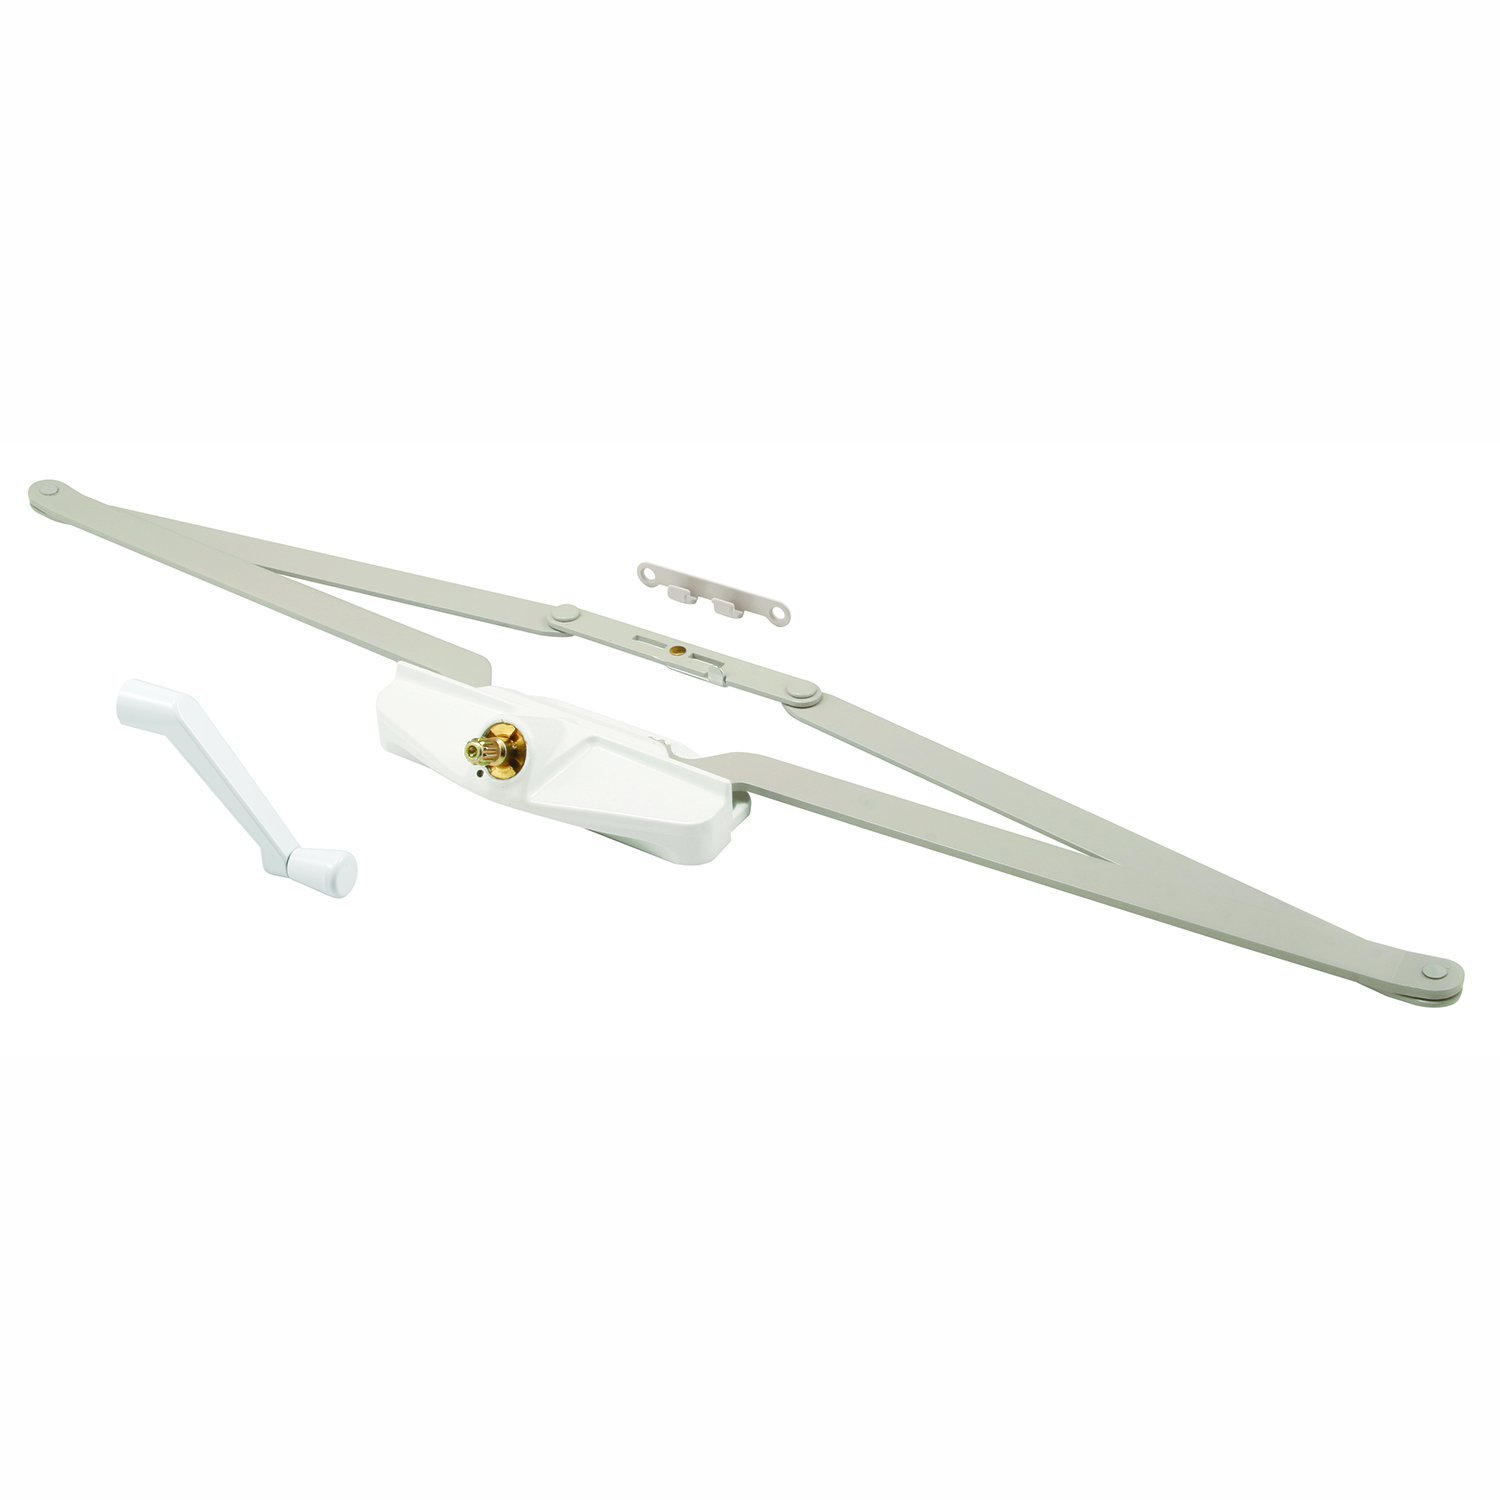 Prime-Line Products TH 23010 Roto Gear Awning Operator with Crank, 21-1/2-Inch, White